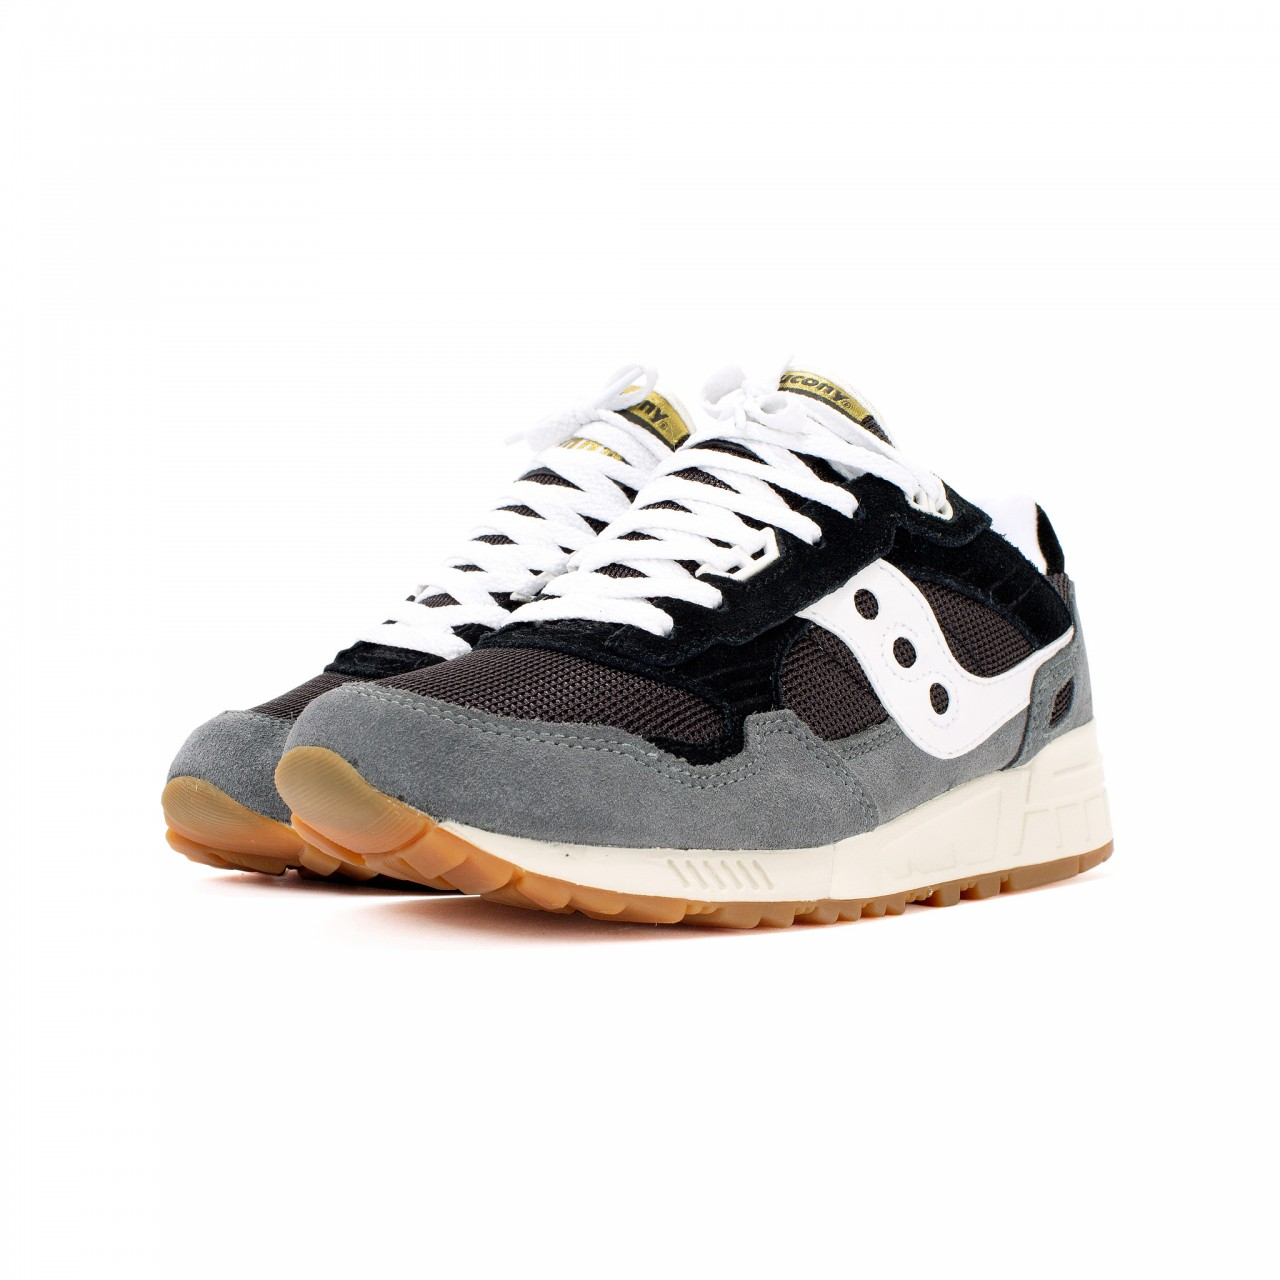 Saucony Shadow Uomo 5000 S70404 24